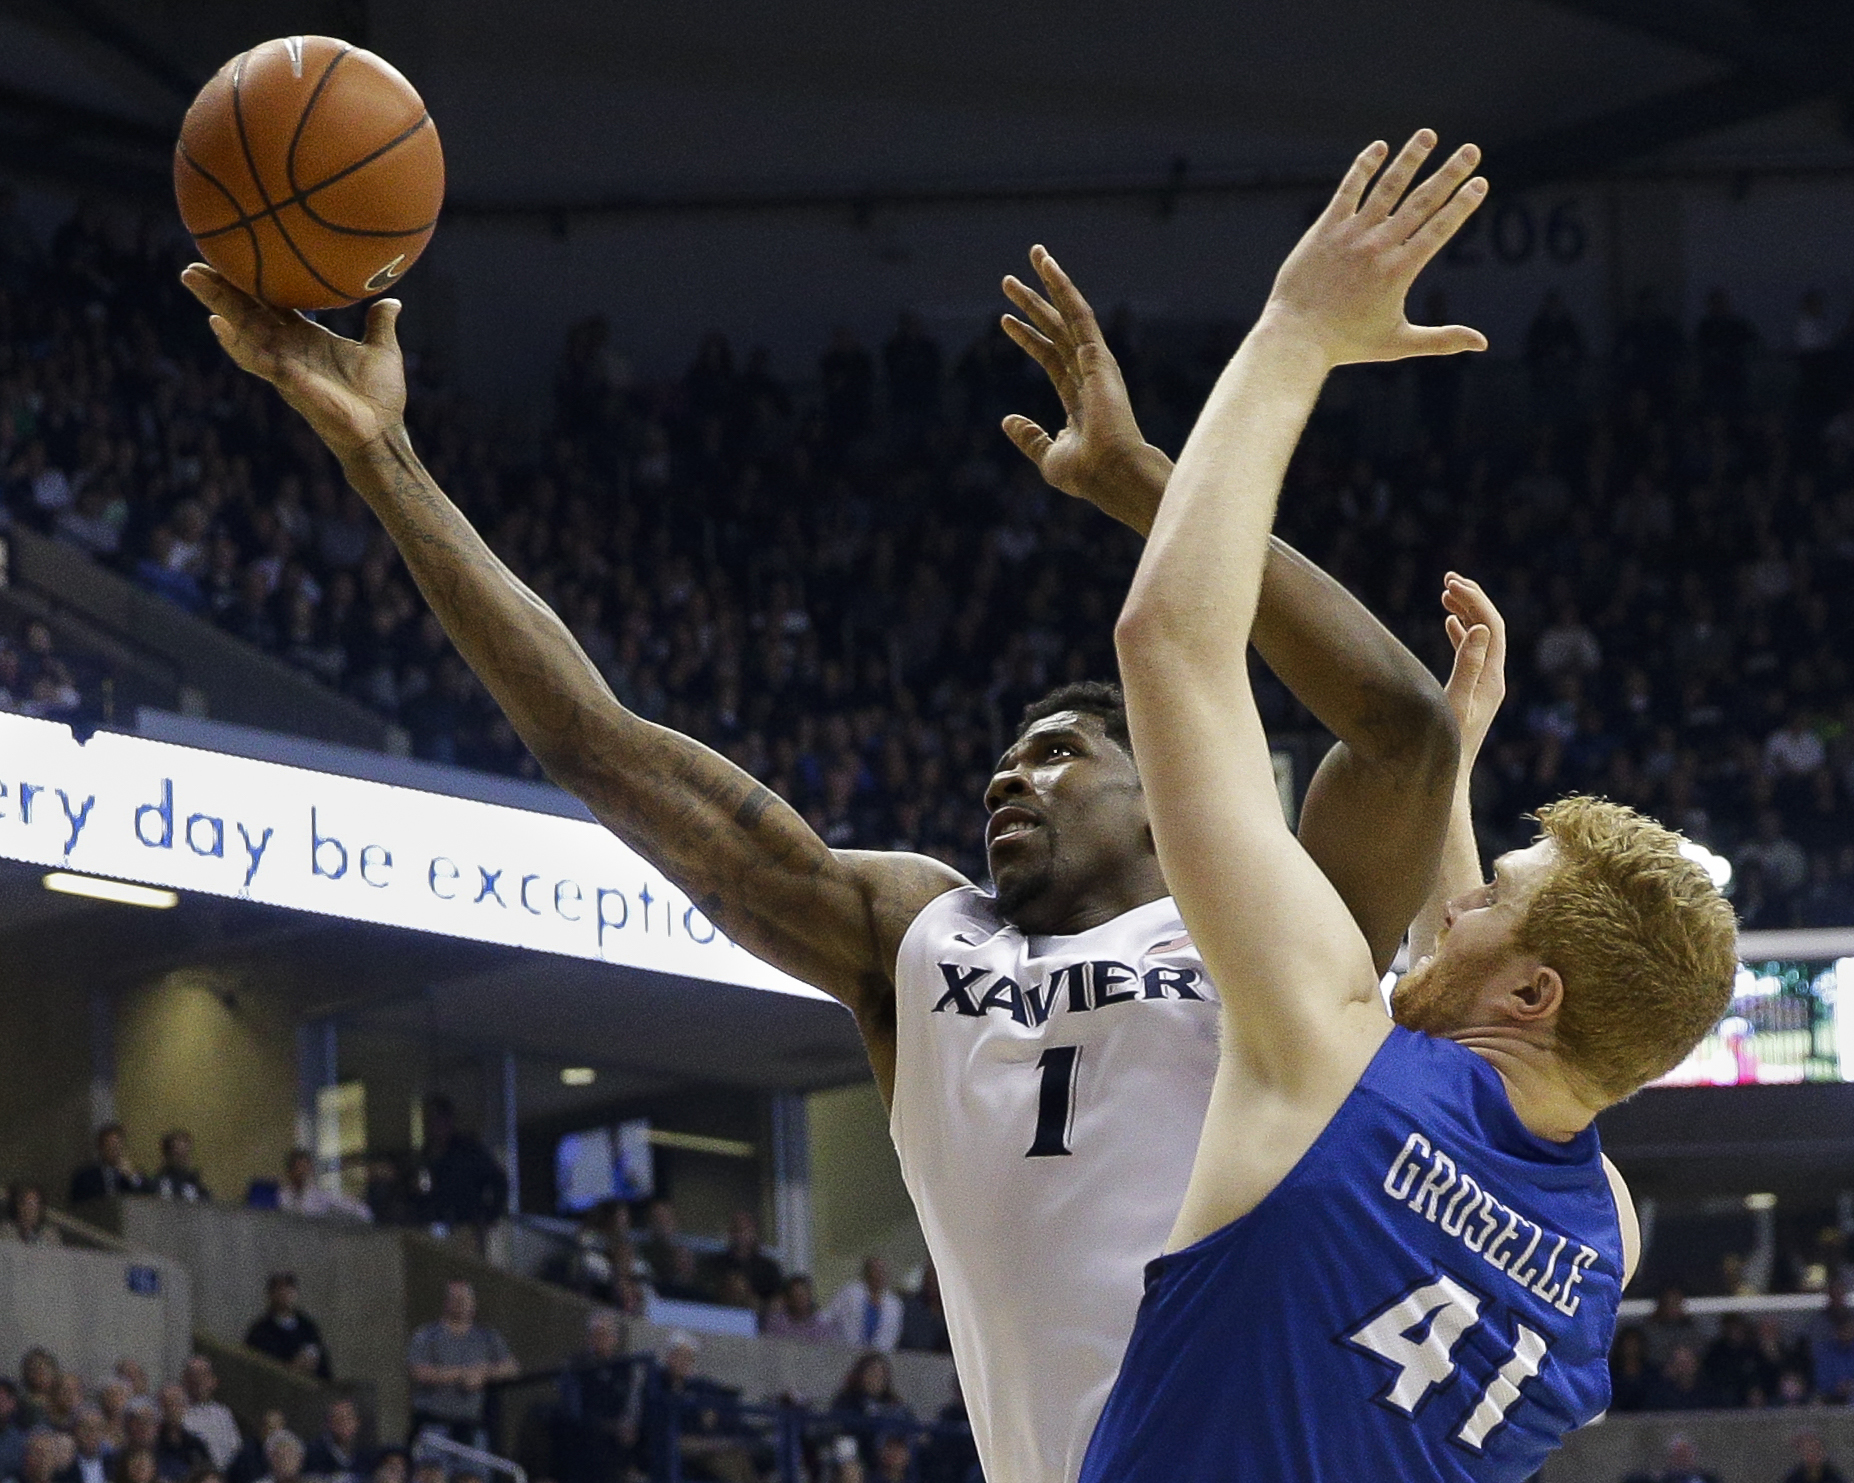 Xavier's Jalen Reynolds (1) shoots against Creighton's Geoffrey Groselle (41) during the first half of an NCAA college basketball game, Saturday, March 5, 2016, in Cincinnati. (AP Photo/John Minchillo)